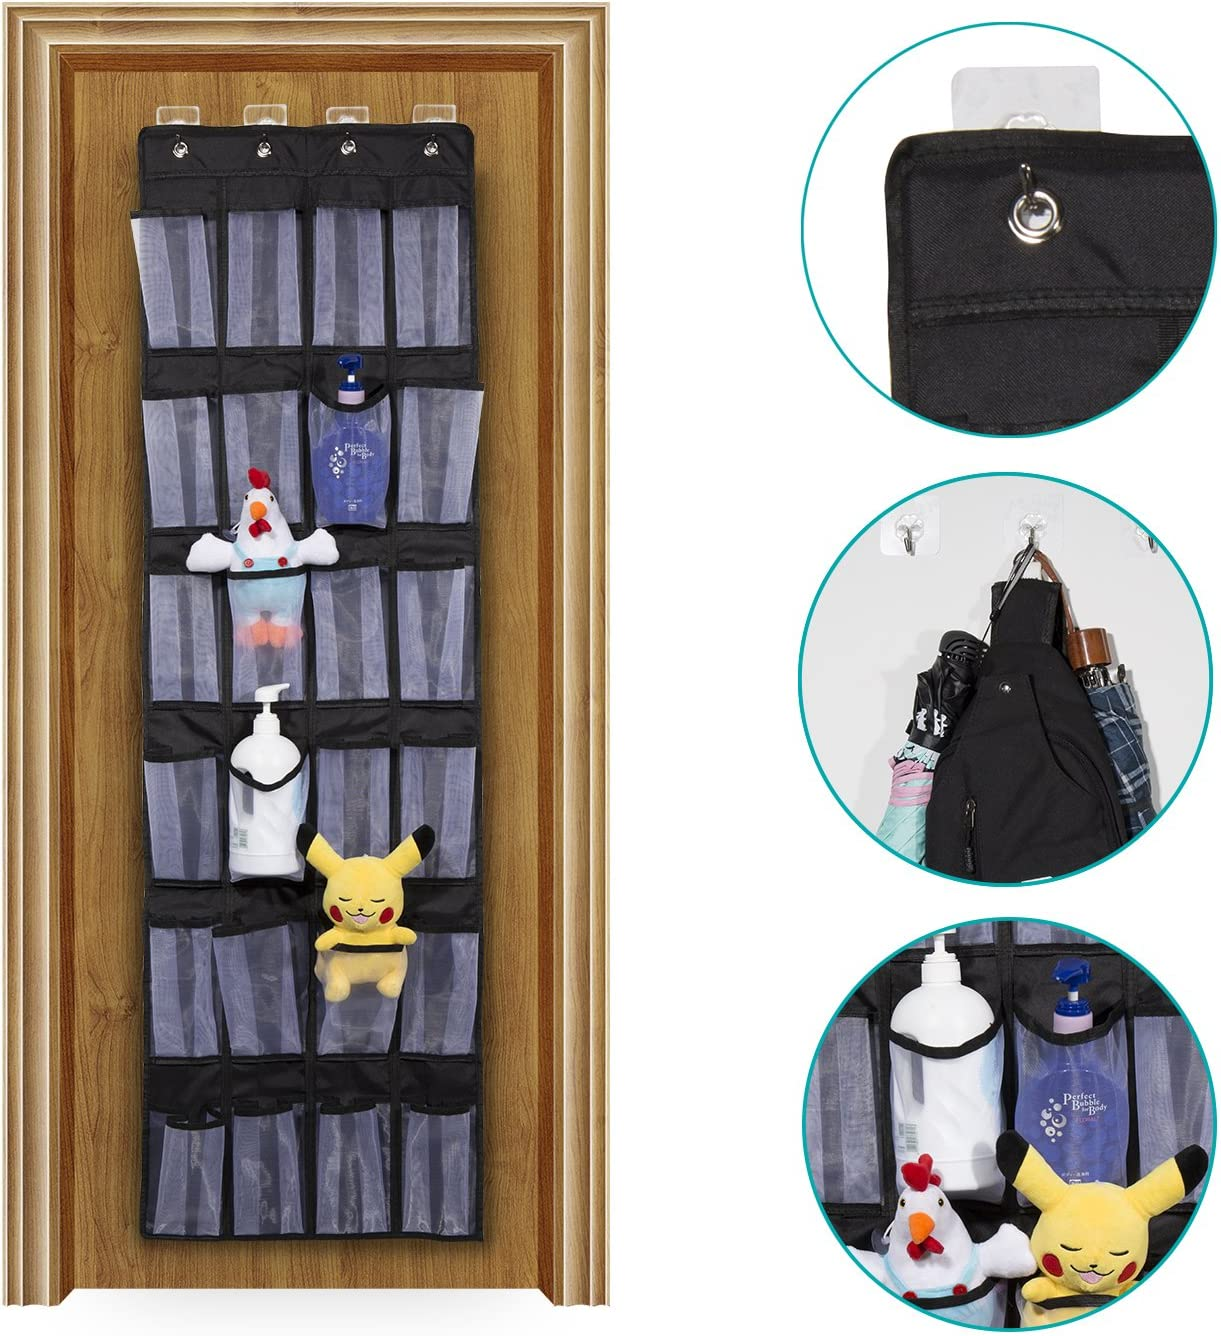 Meepo Hanging Shoe Storage BLACK THICK 600D OXFORD FABRIC Black Oxford Over The Door Shoe Organiser Heavy Duty Shoe Rack with 24 Mesh Pockets Storage for Closet,4 Hooks